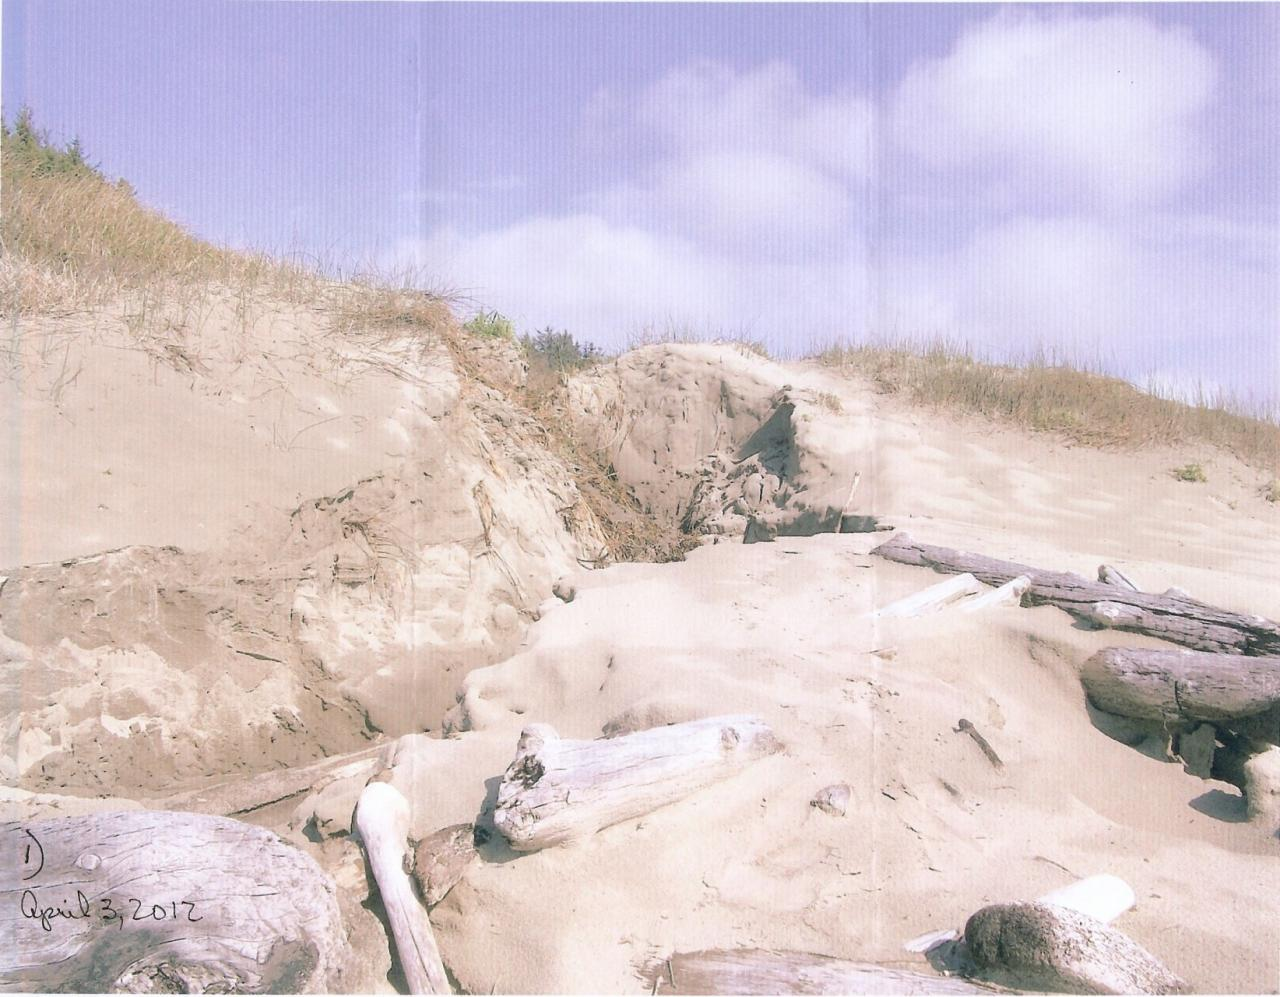 In March, we had 15 plus inches of rain plus 6 inches of heavy snow.  This erosion occurred as the result of heavy runoff from these storms.  The water came off the hillside and down a roadway.